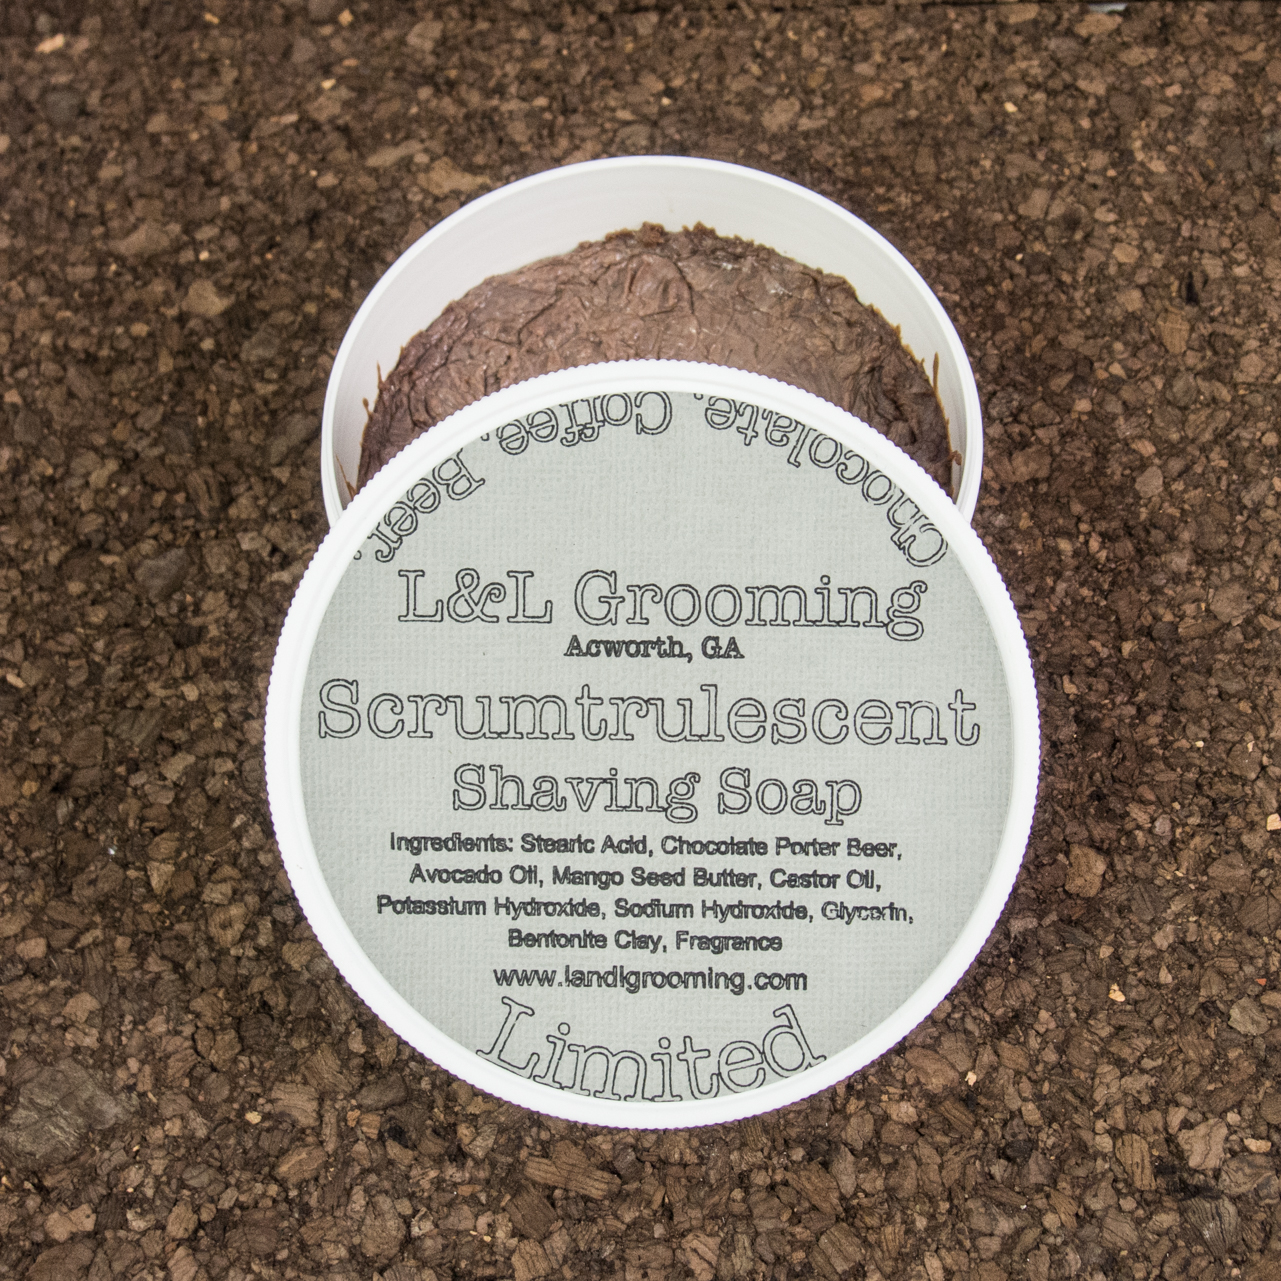 Declaration Grooming - Scrumtrulescent - Soap (Vegan) image